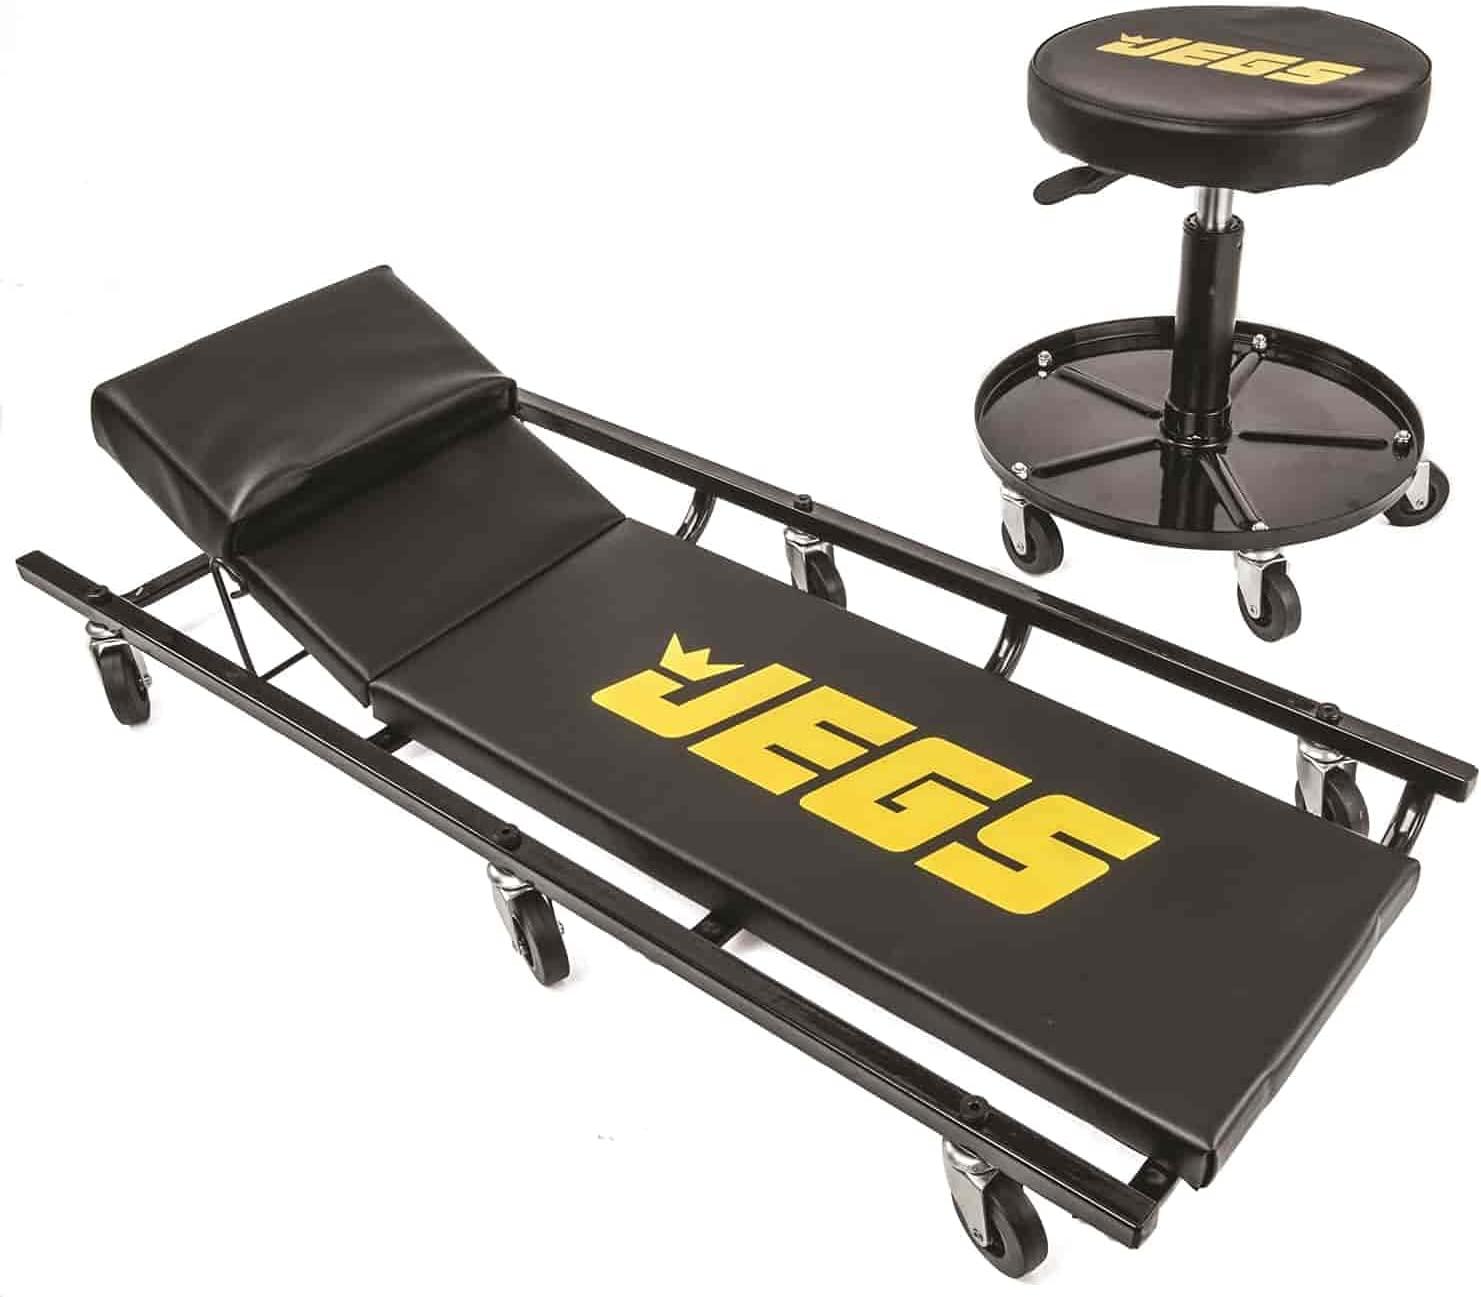 JEGS Creeper All Max 79% OFF items free shipping and Air Seat Black 350 Creep with Logo LBS